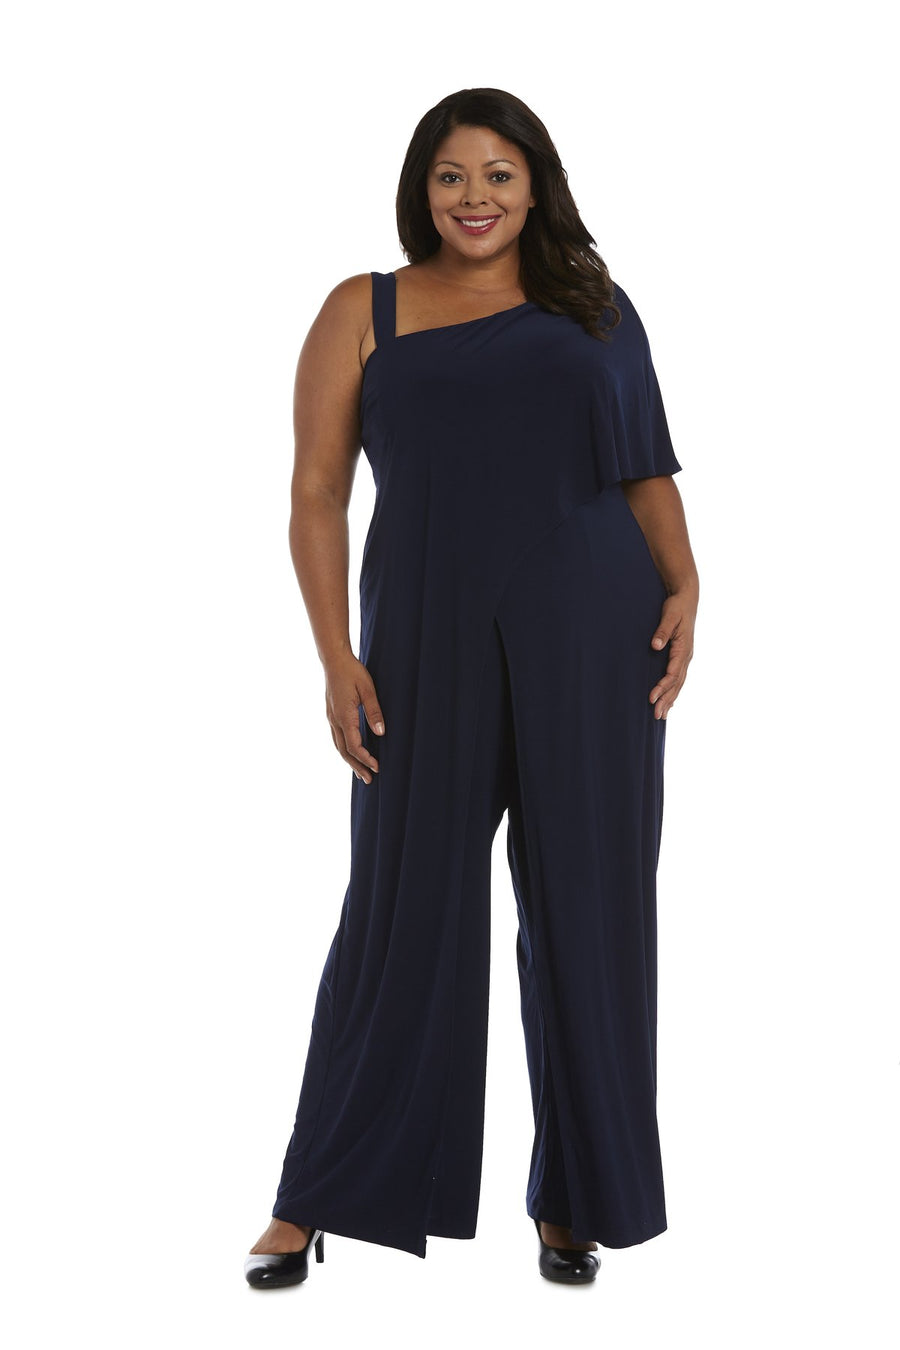 Asymmetric Jumpsuit with Overlay and Draped Sleeves - Plus Peacock